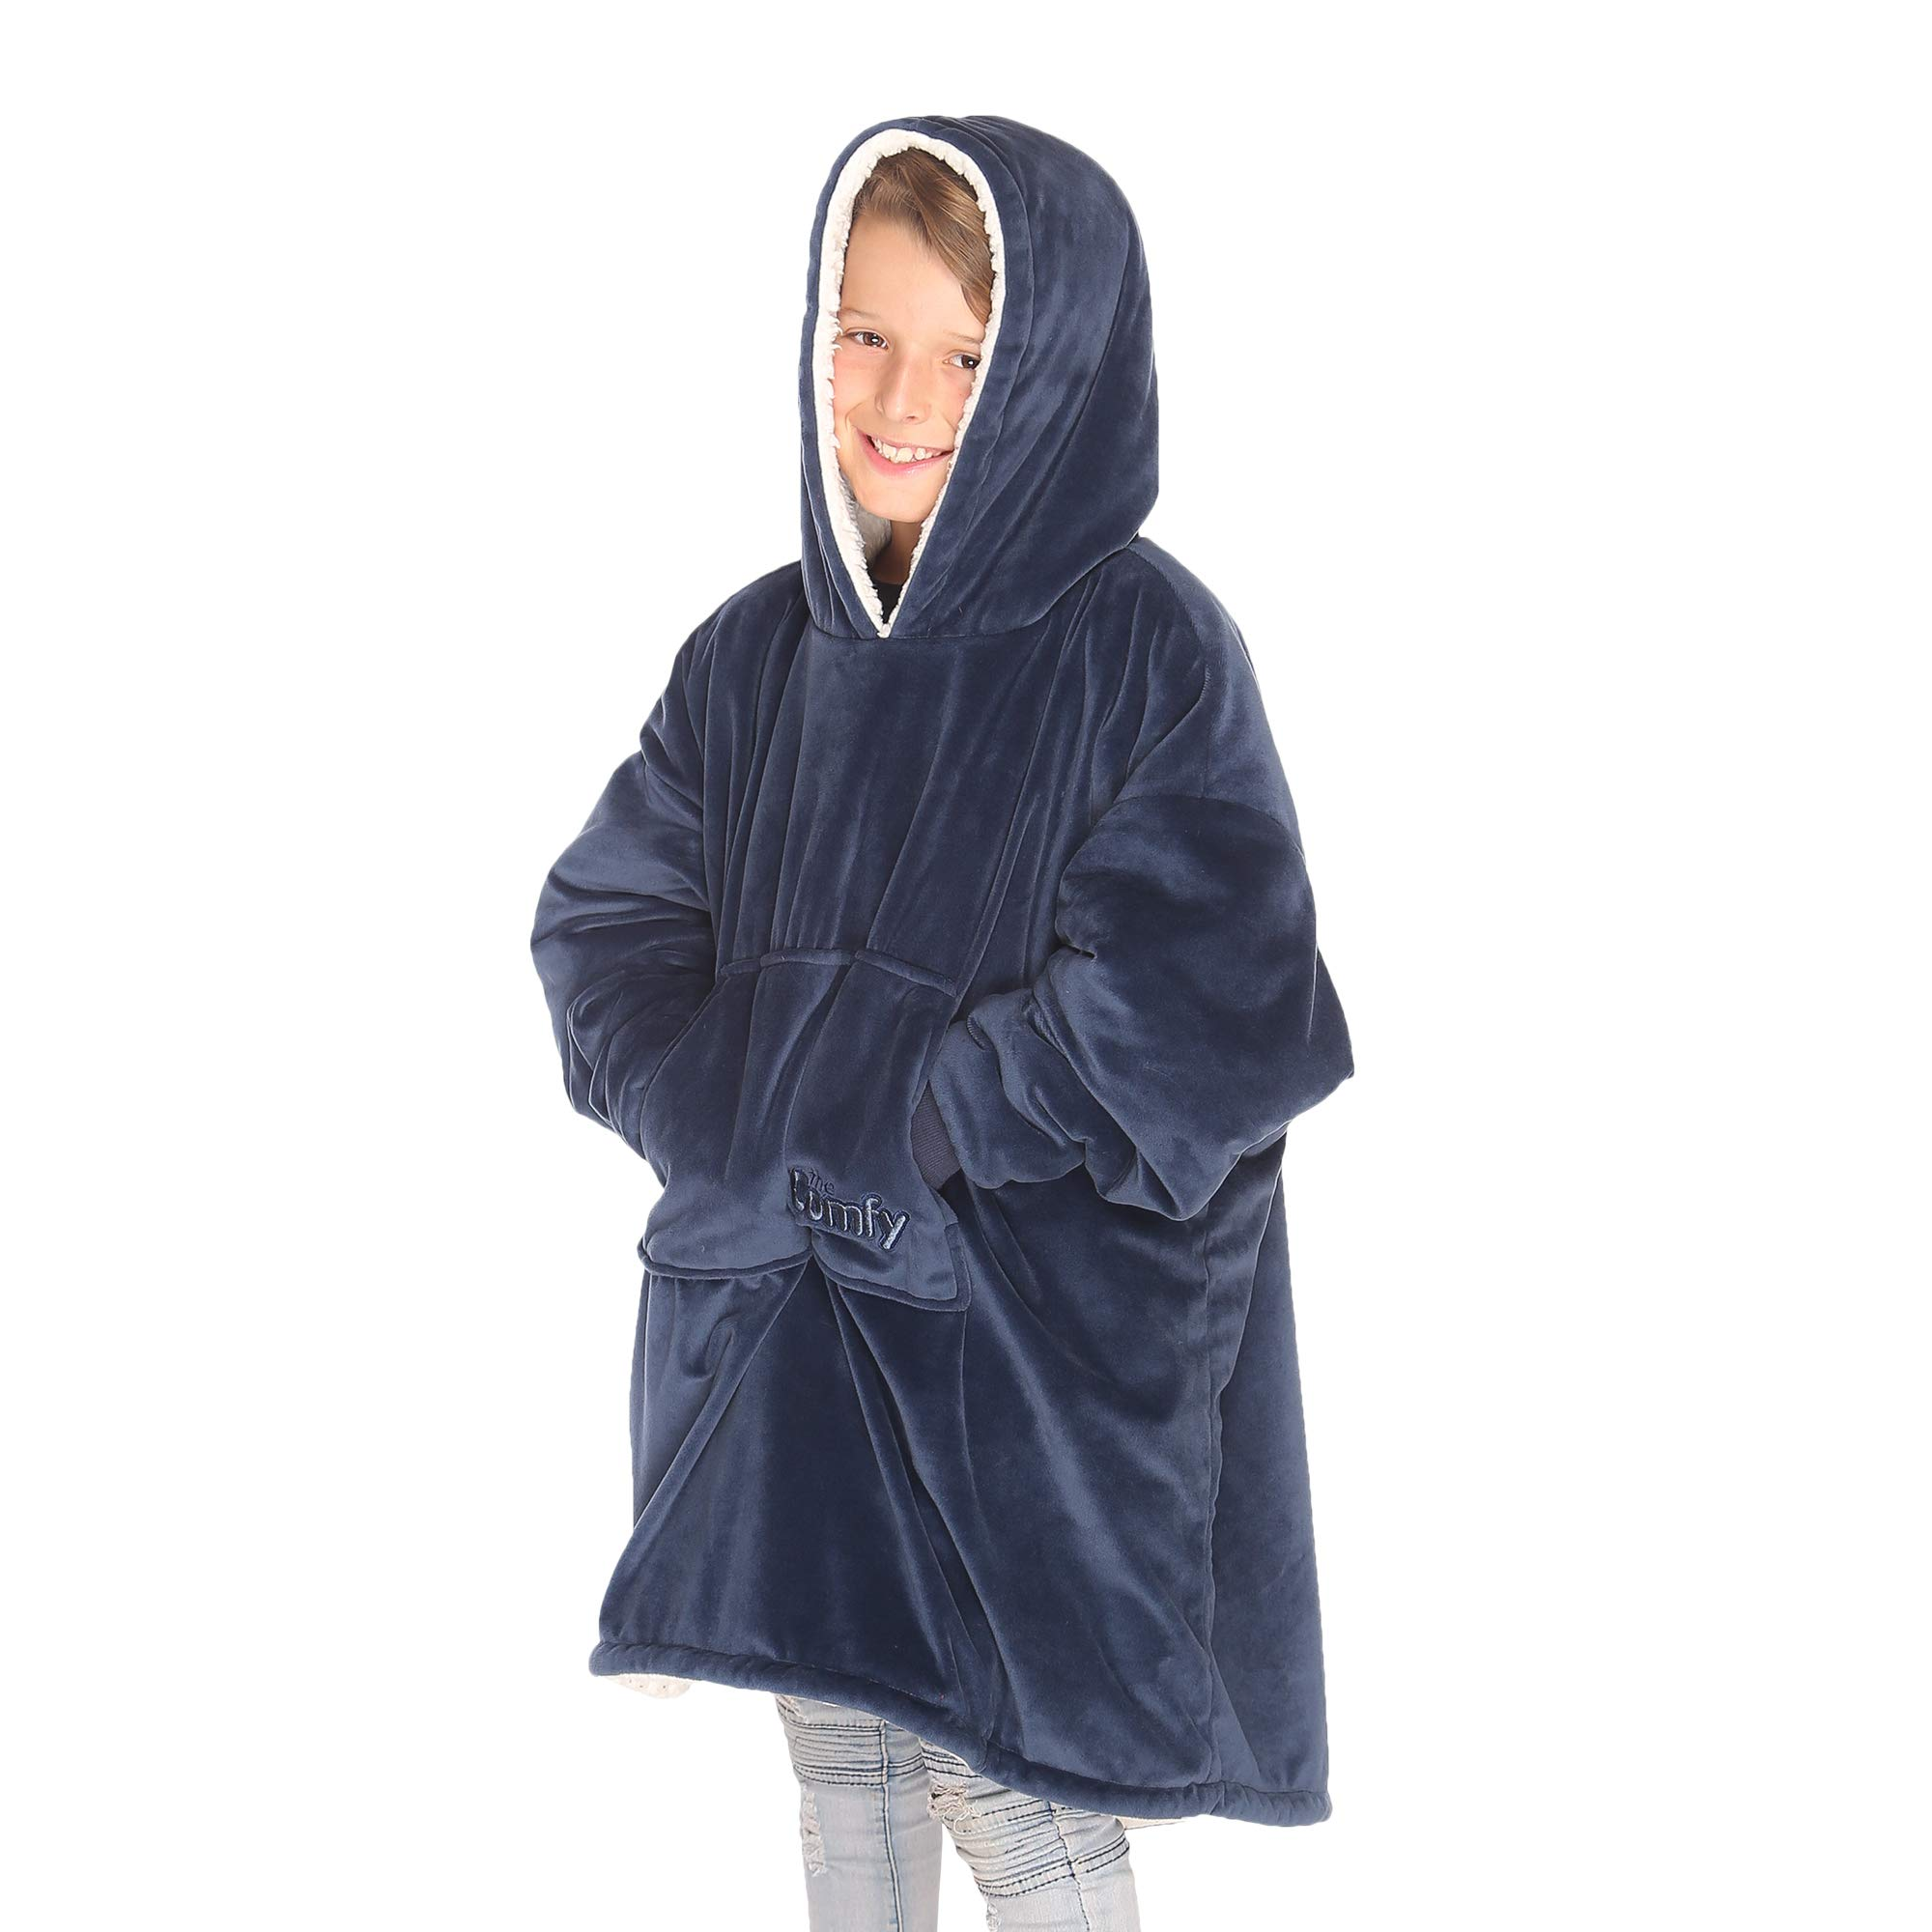 THE COMFY Kids: Original Blanket Sweatshirt, Shark Tank, Warm, Soft, Cozy, Wearable Sherpa Hoodie, Multiple Colors, One Size Fits All, Children, Boys, Girls, Blue, Pink by THE COMFY